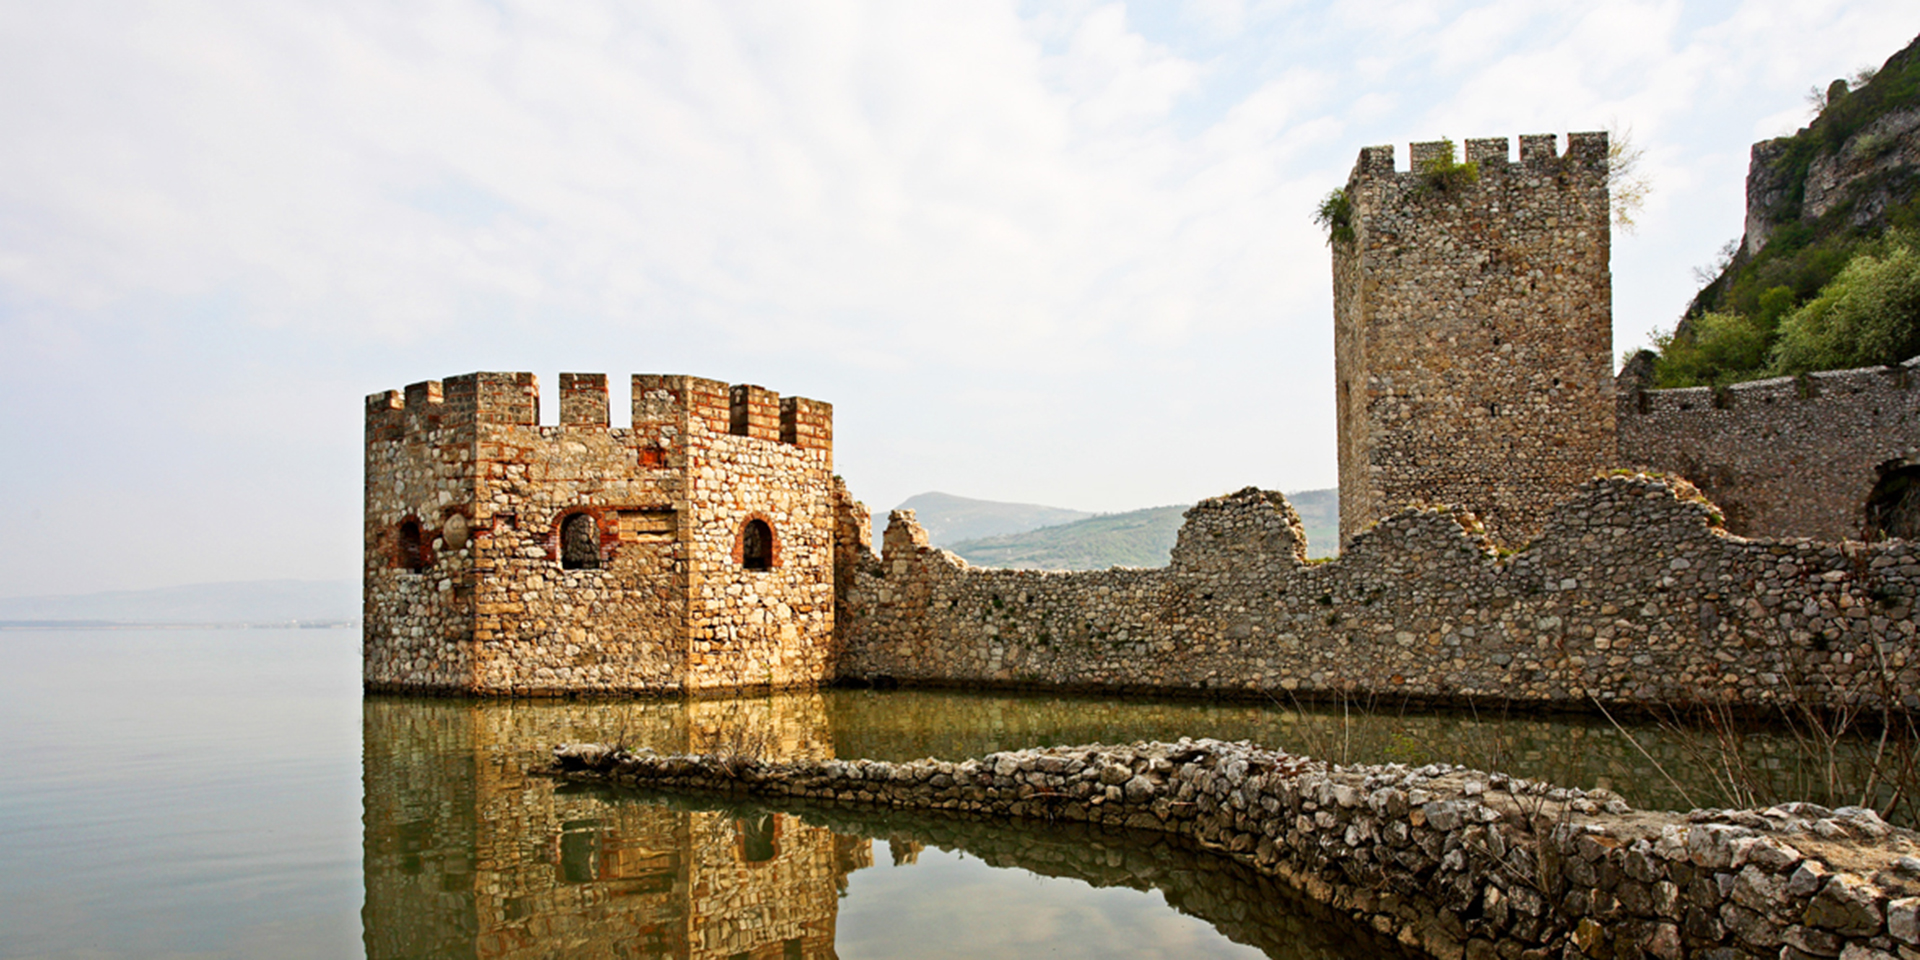 Golubac fortress, Dragan Bosnić